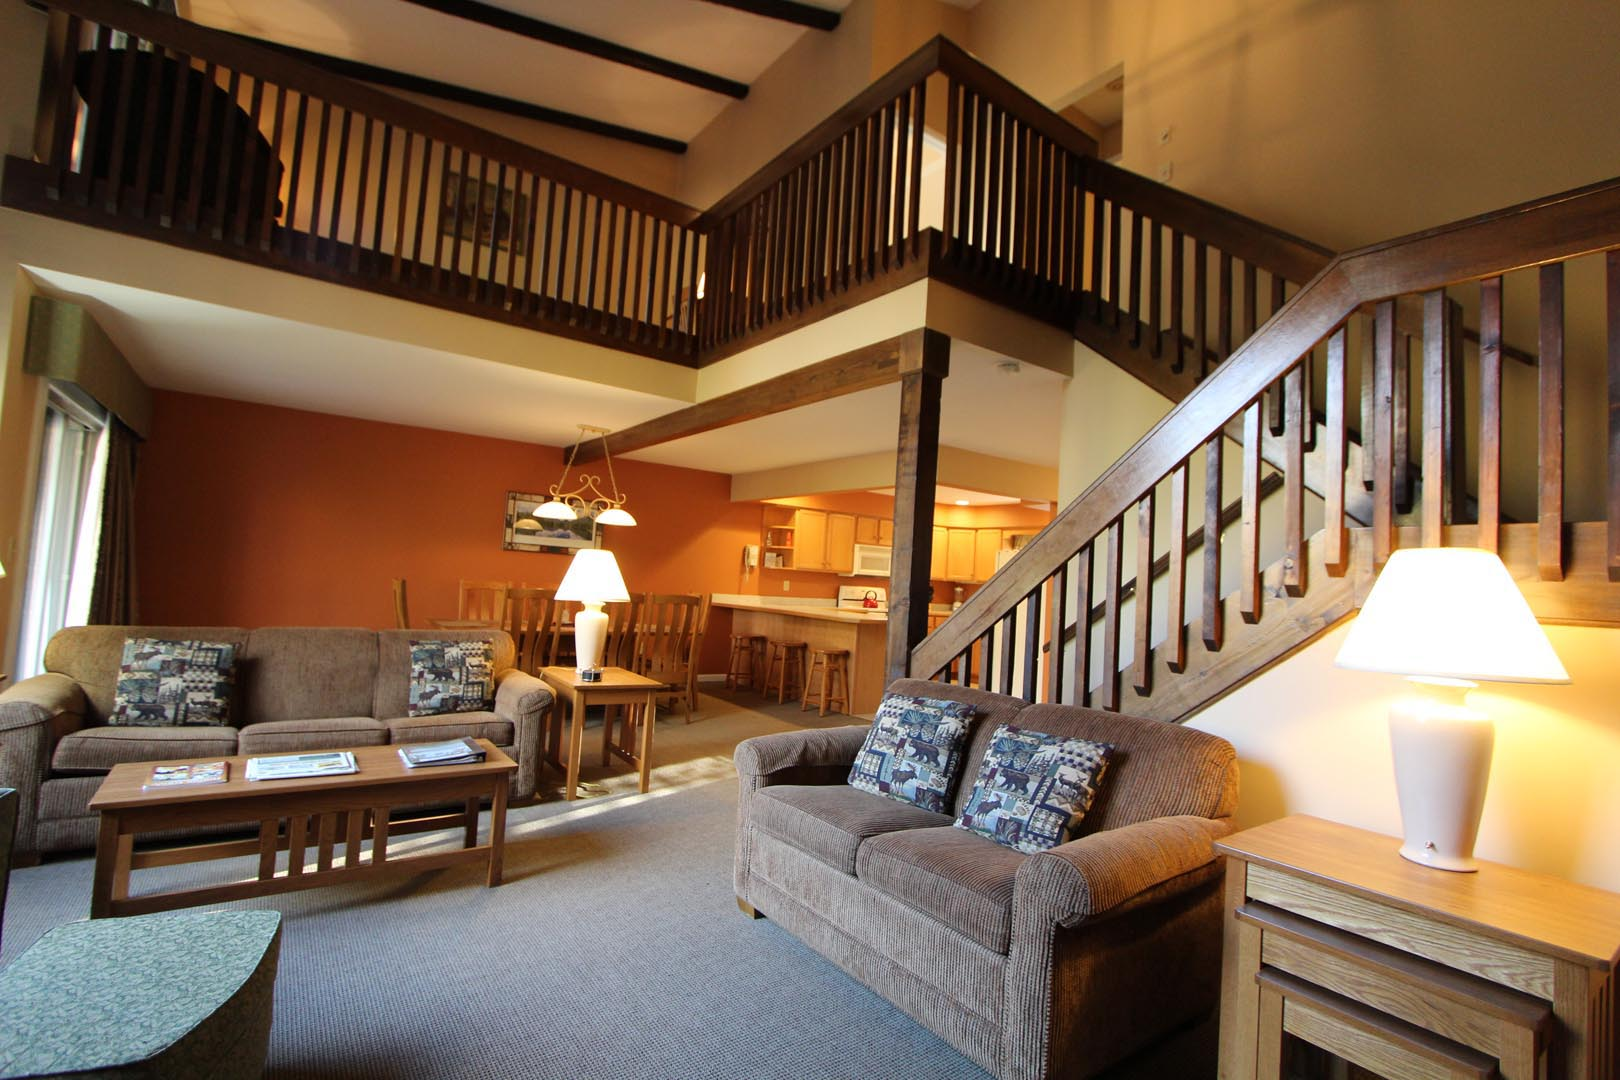 A interior view of the two story unit at VRI's Lake Placid Club Lodges in New York.